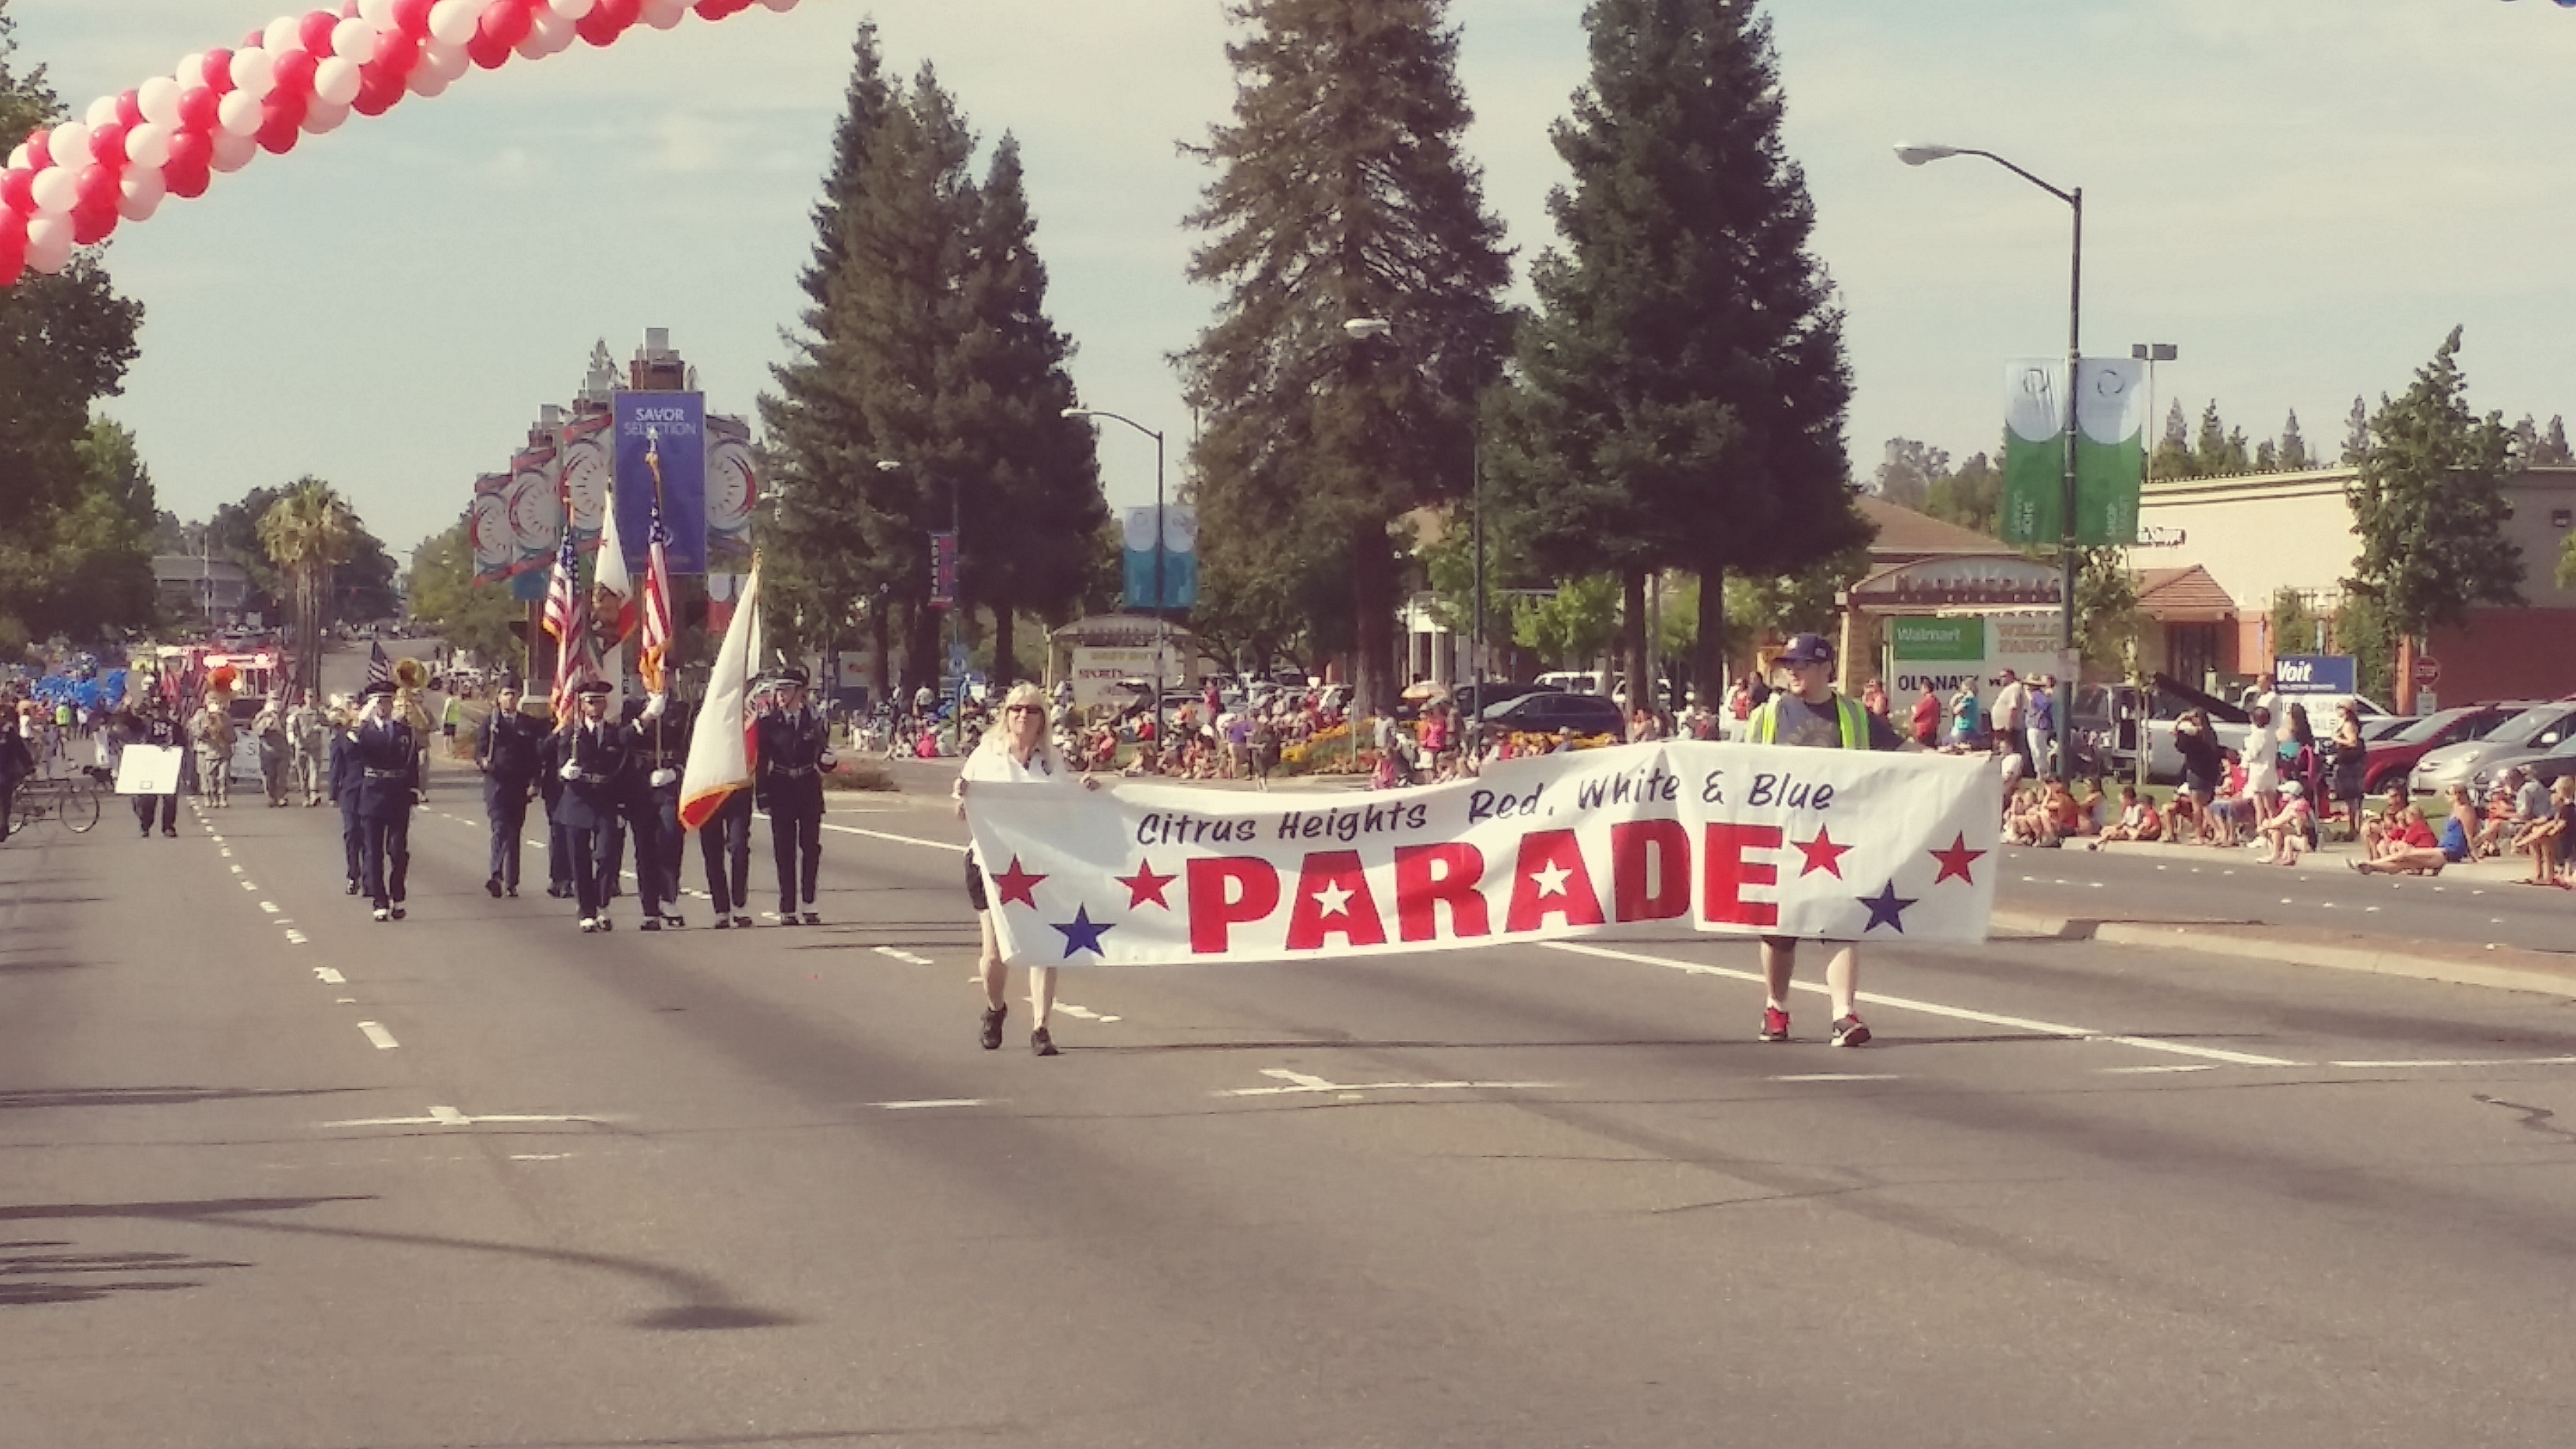 The official parade banner